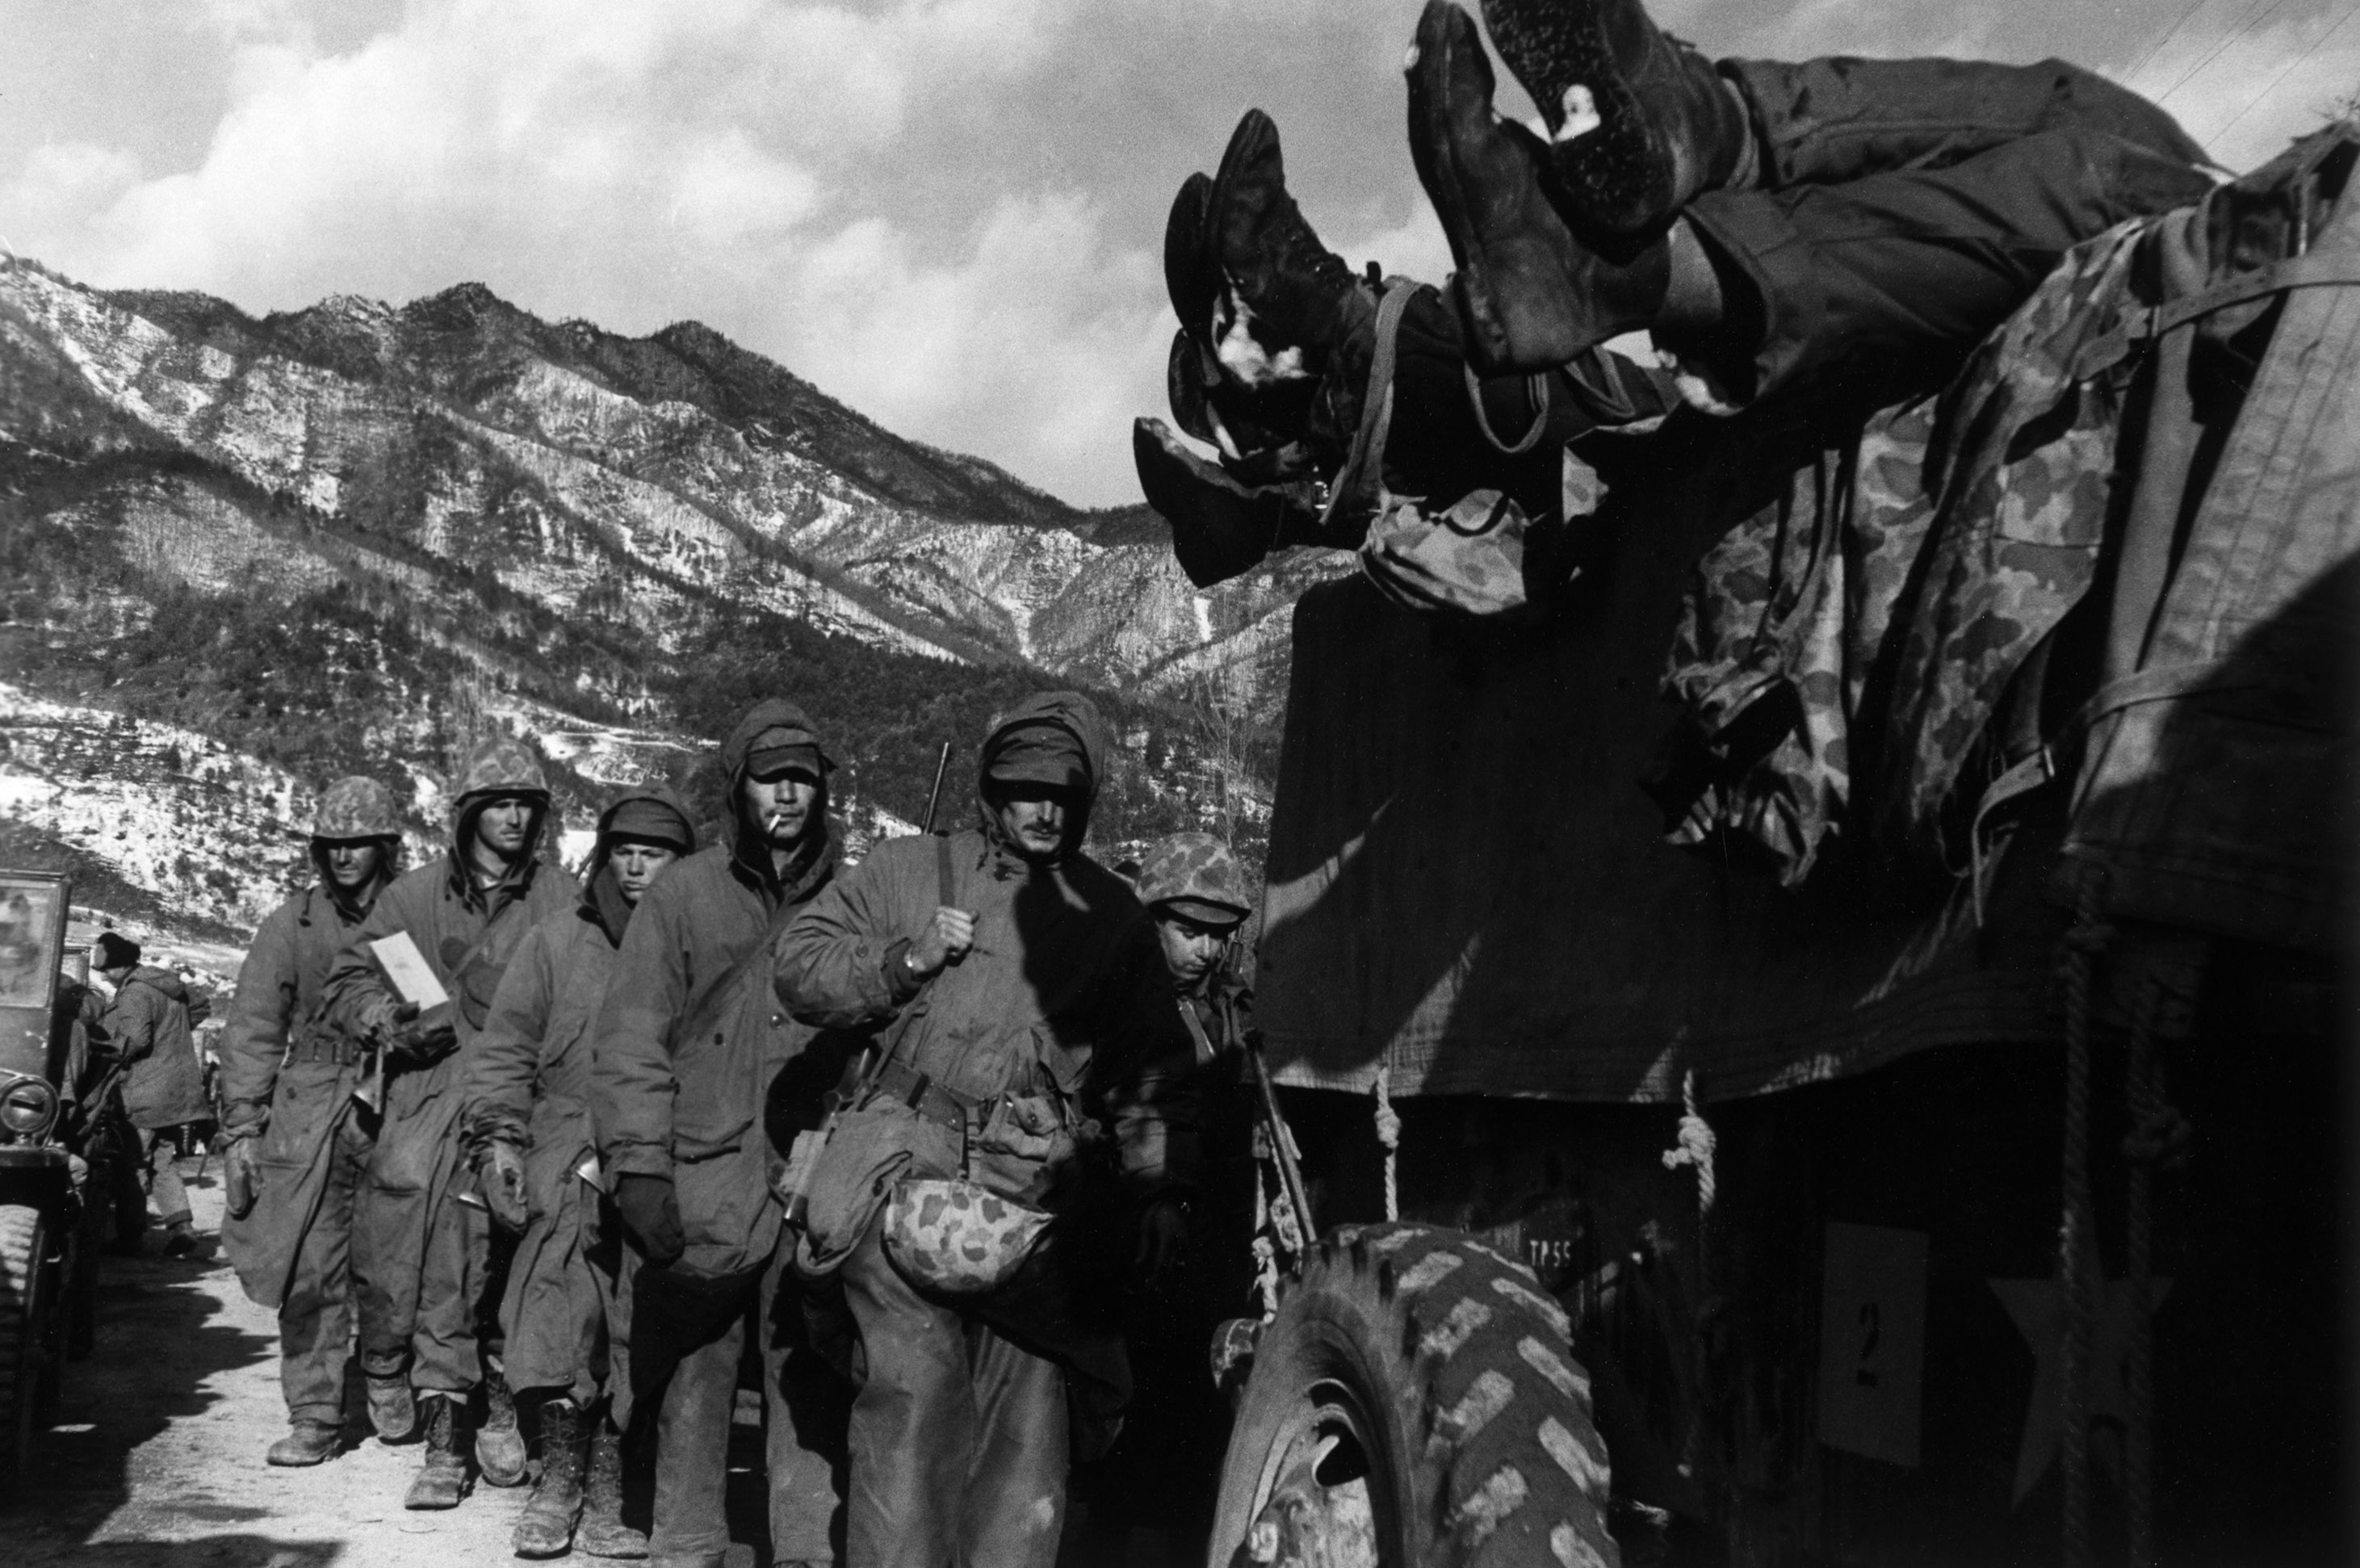 Marines file past a truck loaded with dead troops during the retreat from the Chosin Reservoir, December 1950.